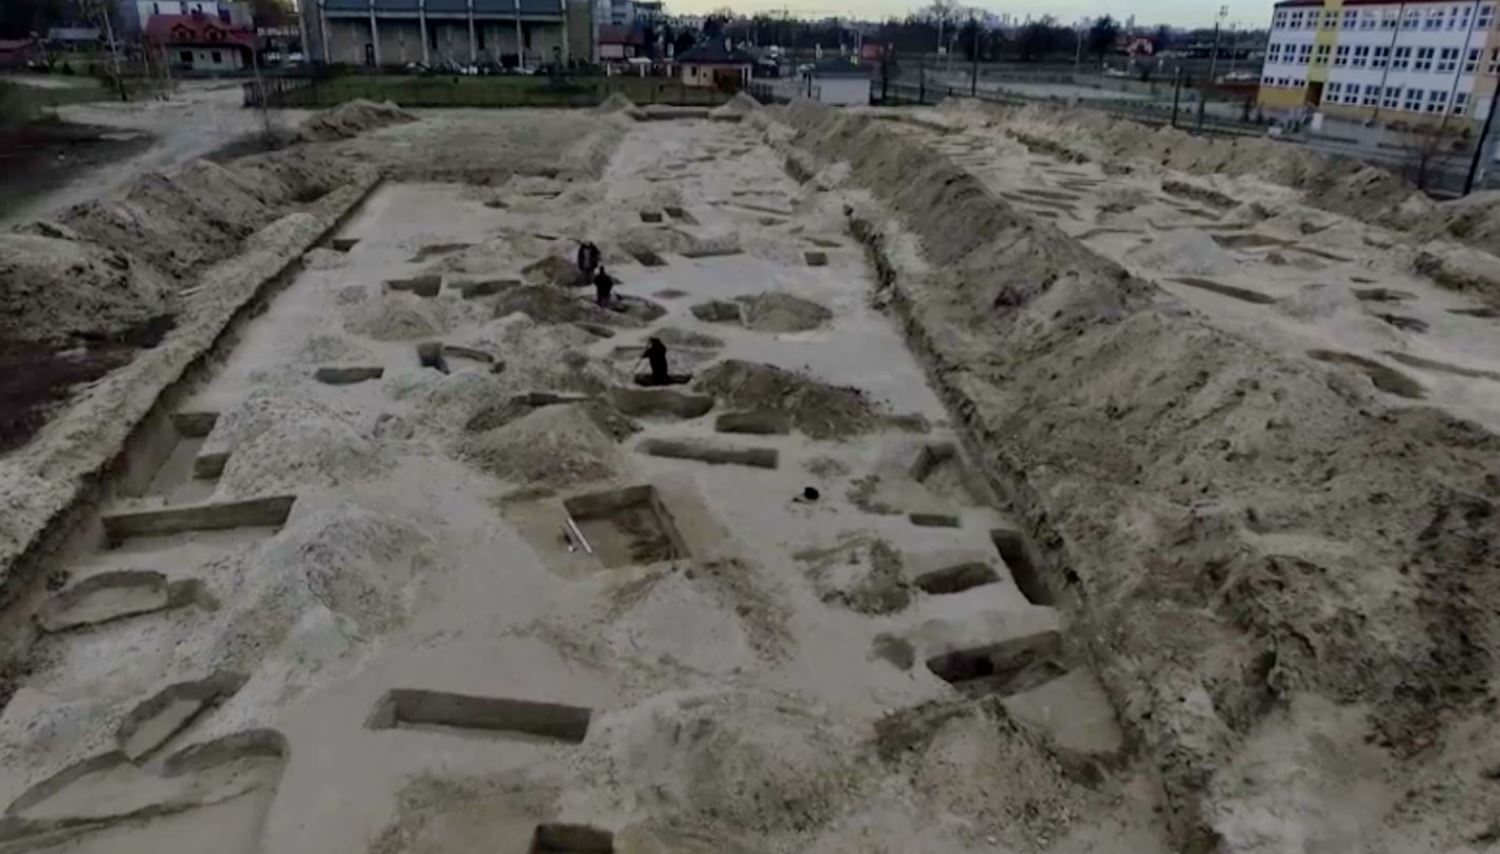 Remains of 3,000-Year-Old Settlement Found in Capital's Białołęka District